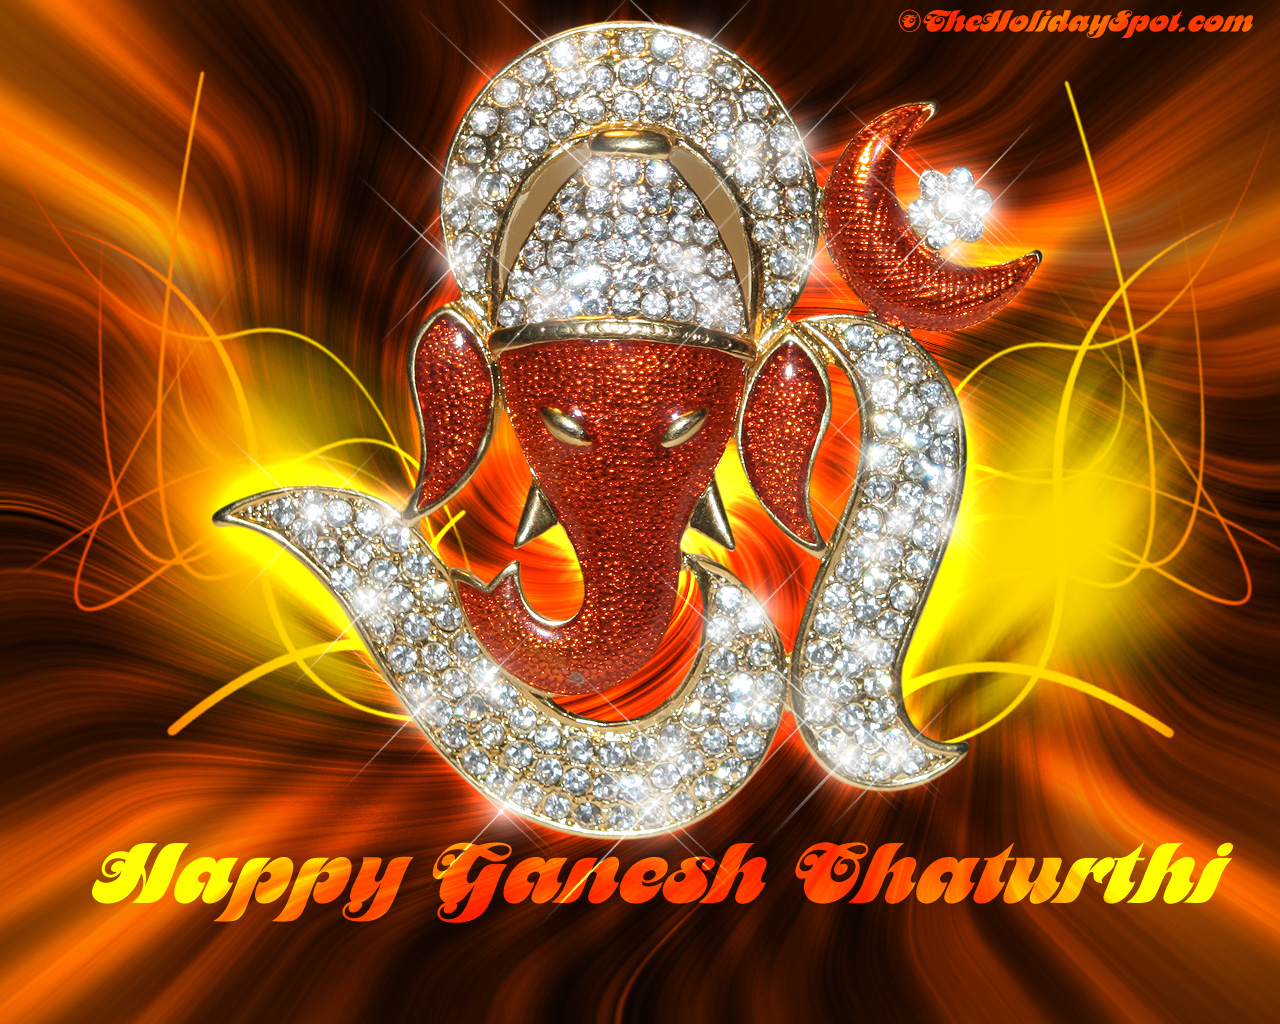 Cute Ganesha Hd Wallpaper Lord Ganesha Wallpaper 1 Love And Quotes